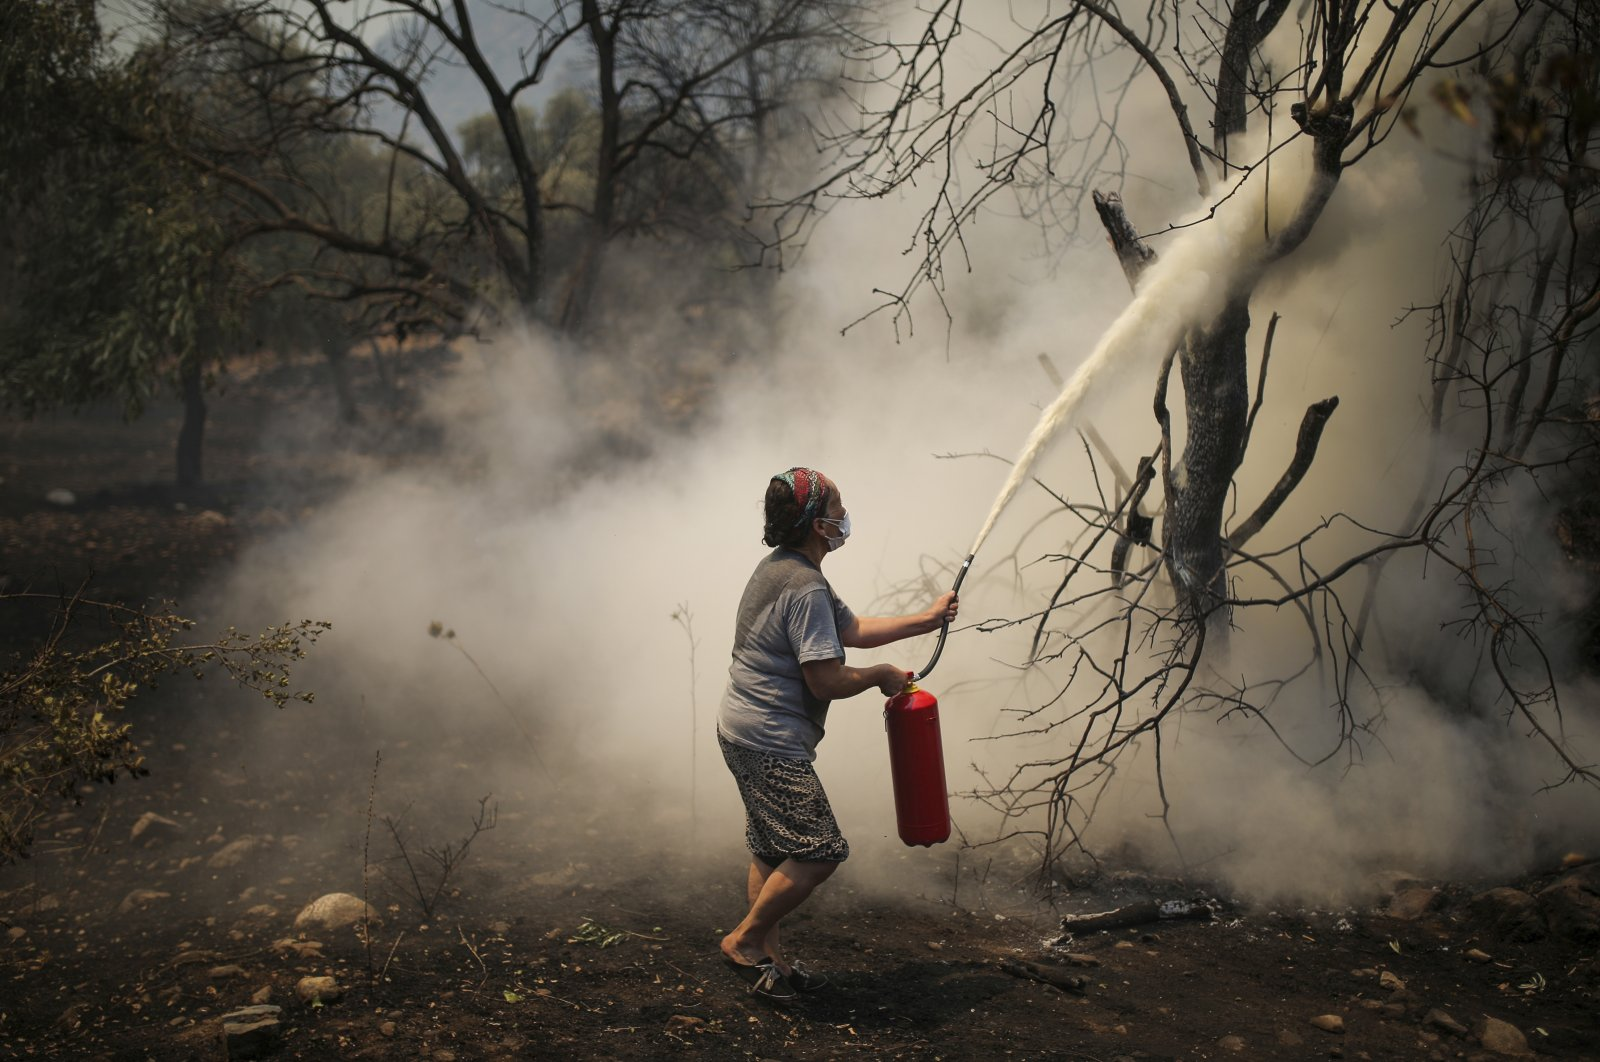 A woman uses a fire extinguisher to save a burning tree in Çökertme village, near Bodrum, Muğla, Turkey, Aug. 3, 2021. (AP Photo)